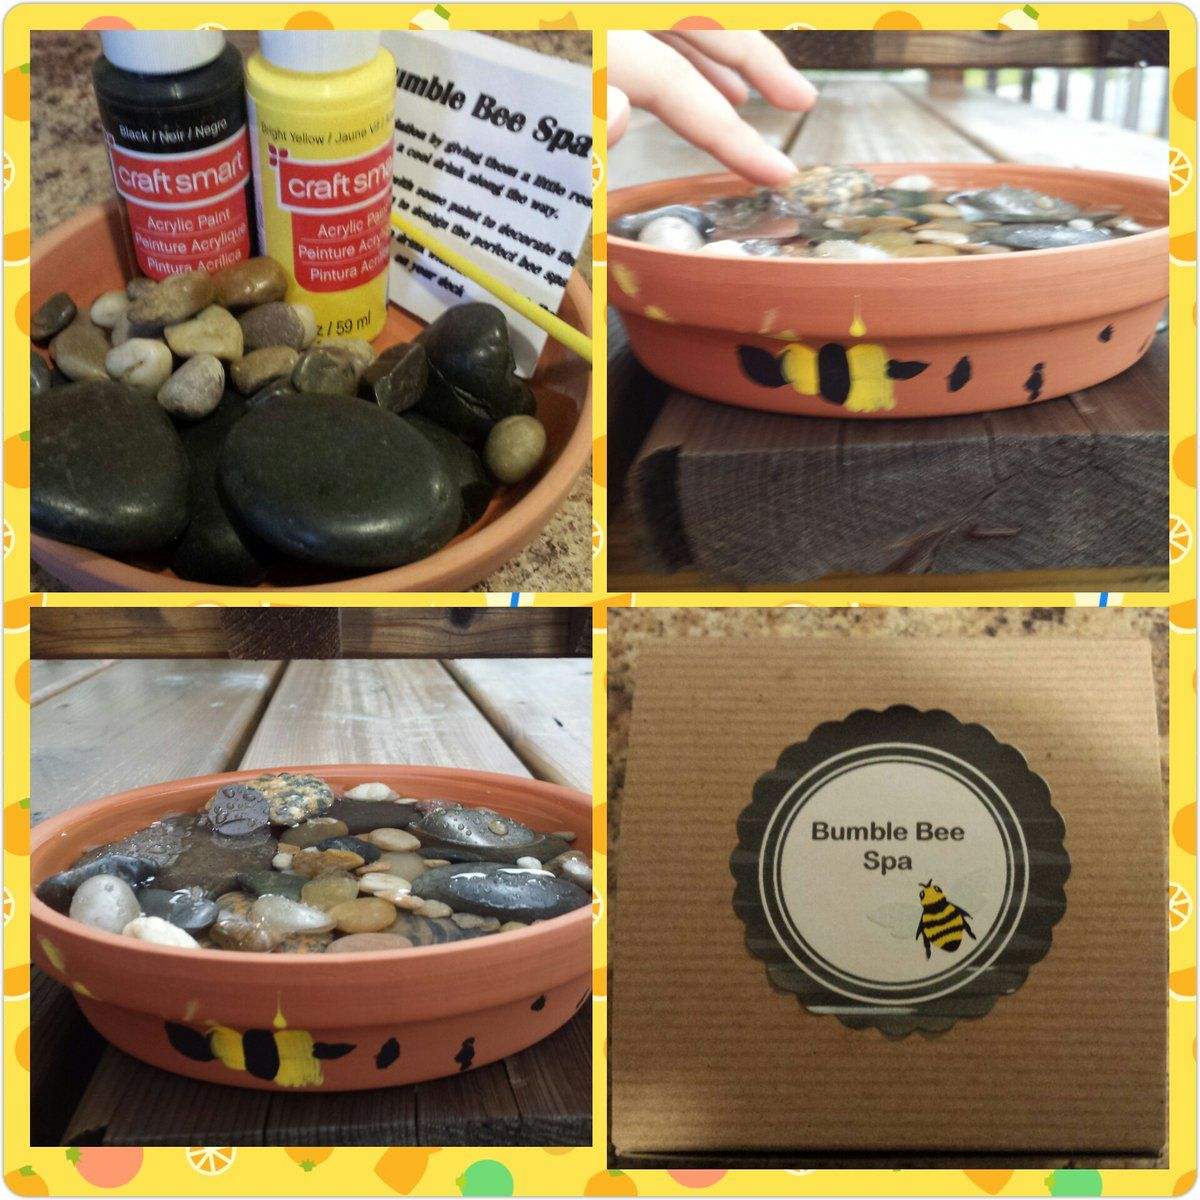 WhimsyMailPutterPail (WhimsyPutter) Twitter Bee boxes